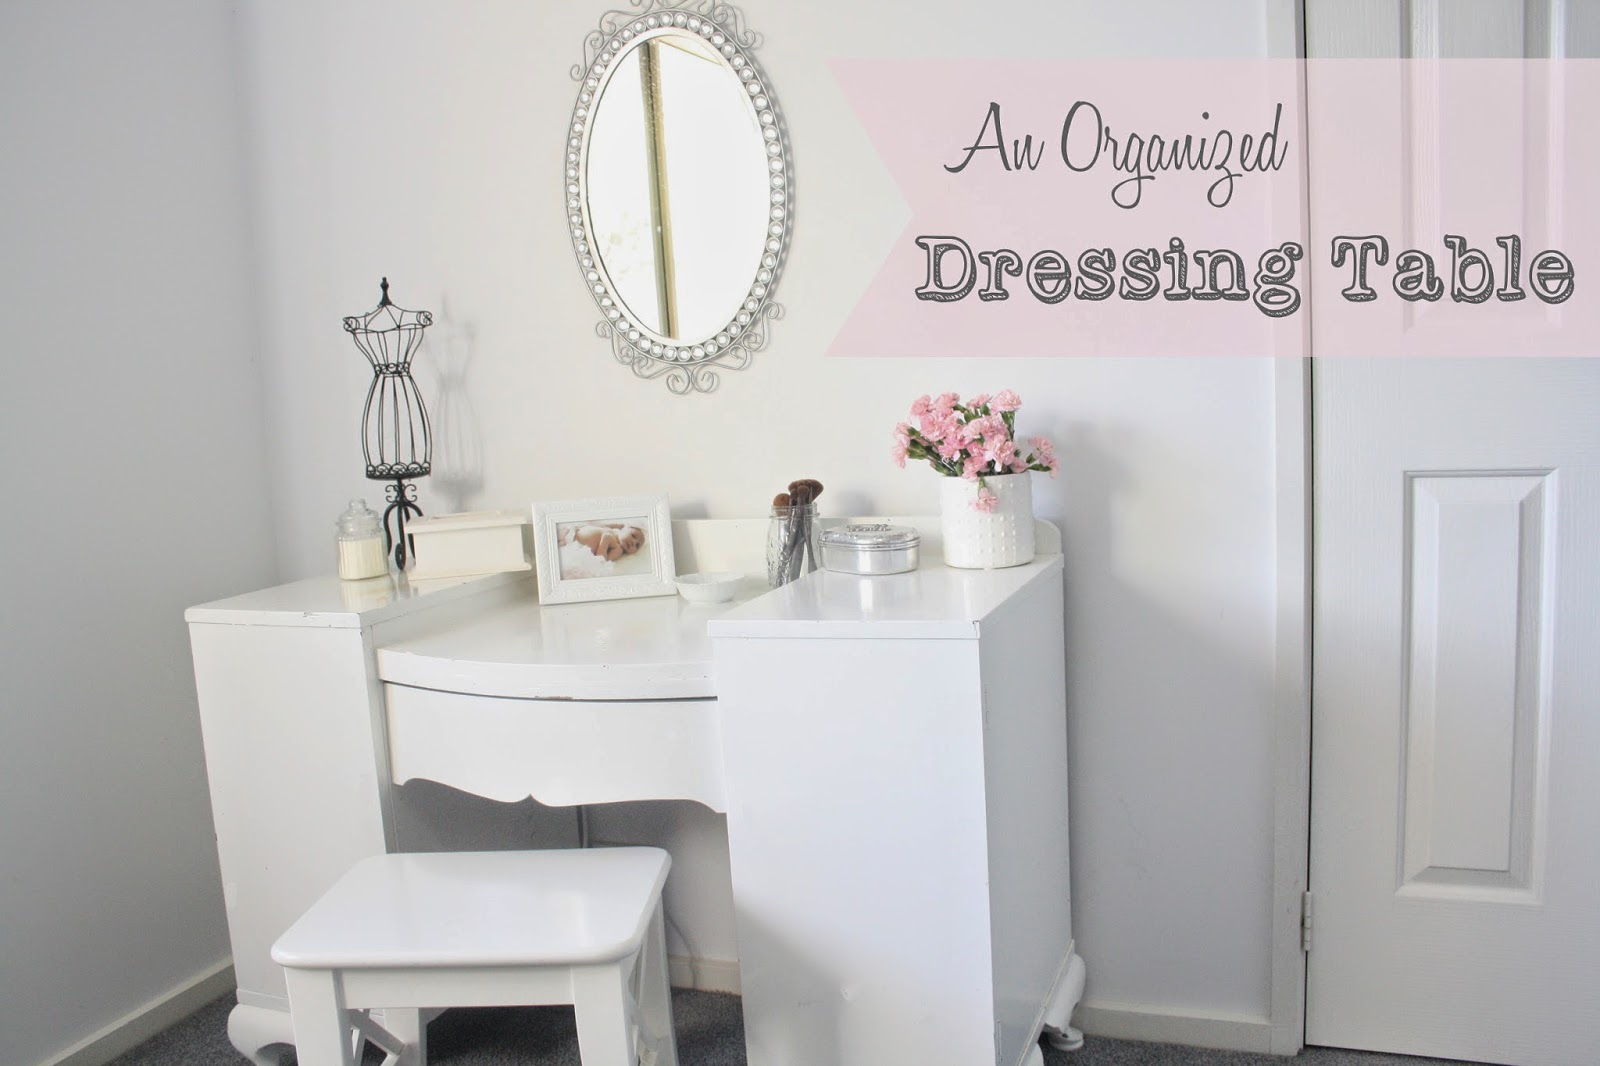 How to organize a dressing table